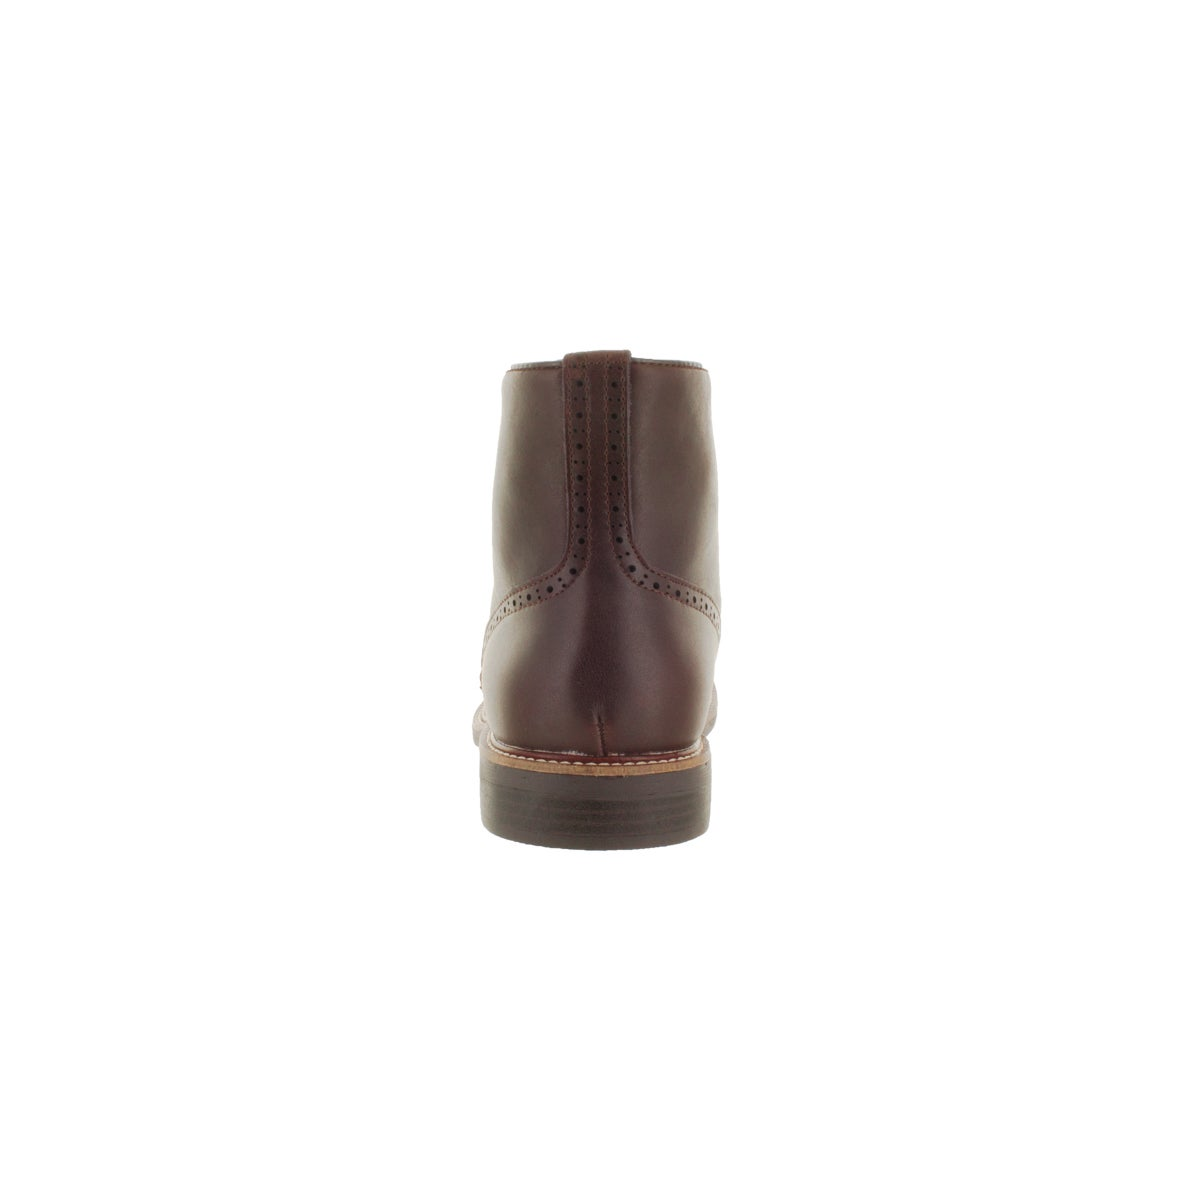 3e670899a Shop Tommy Hilfiger Men s Adolfo Dark Brown Boot - Free Shipping Today -  Overstock - 12320531